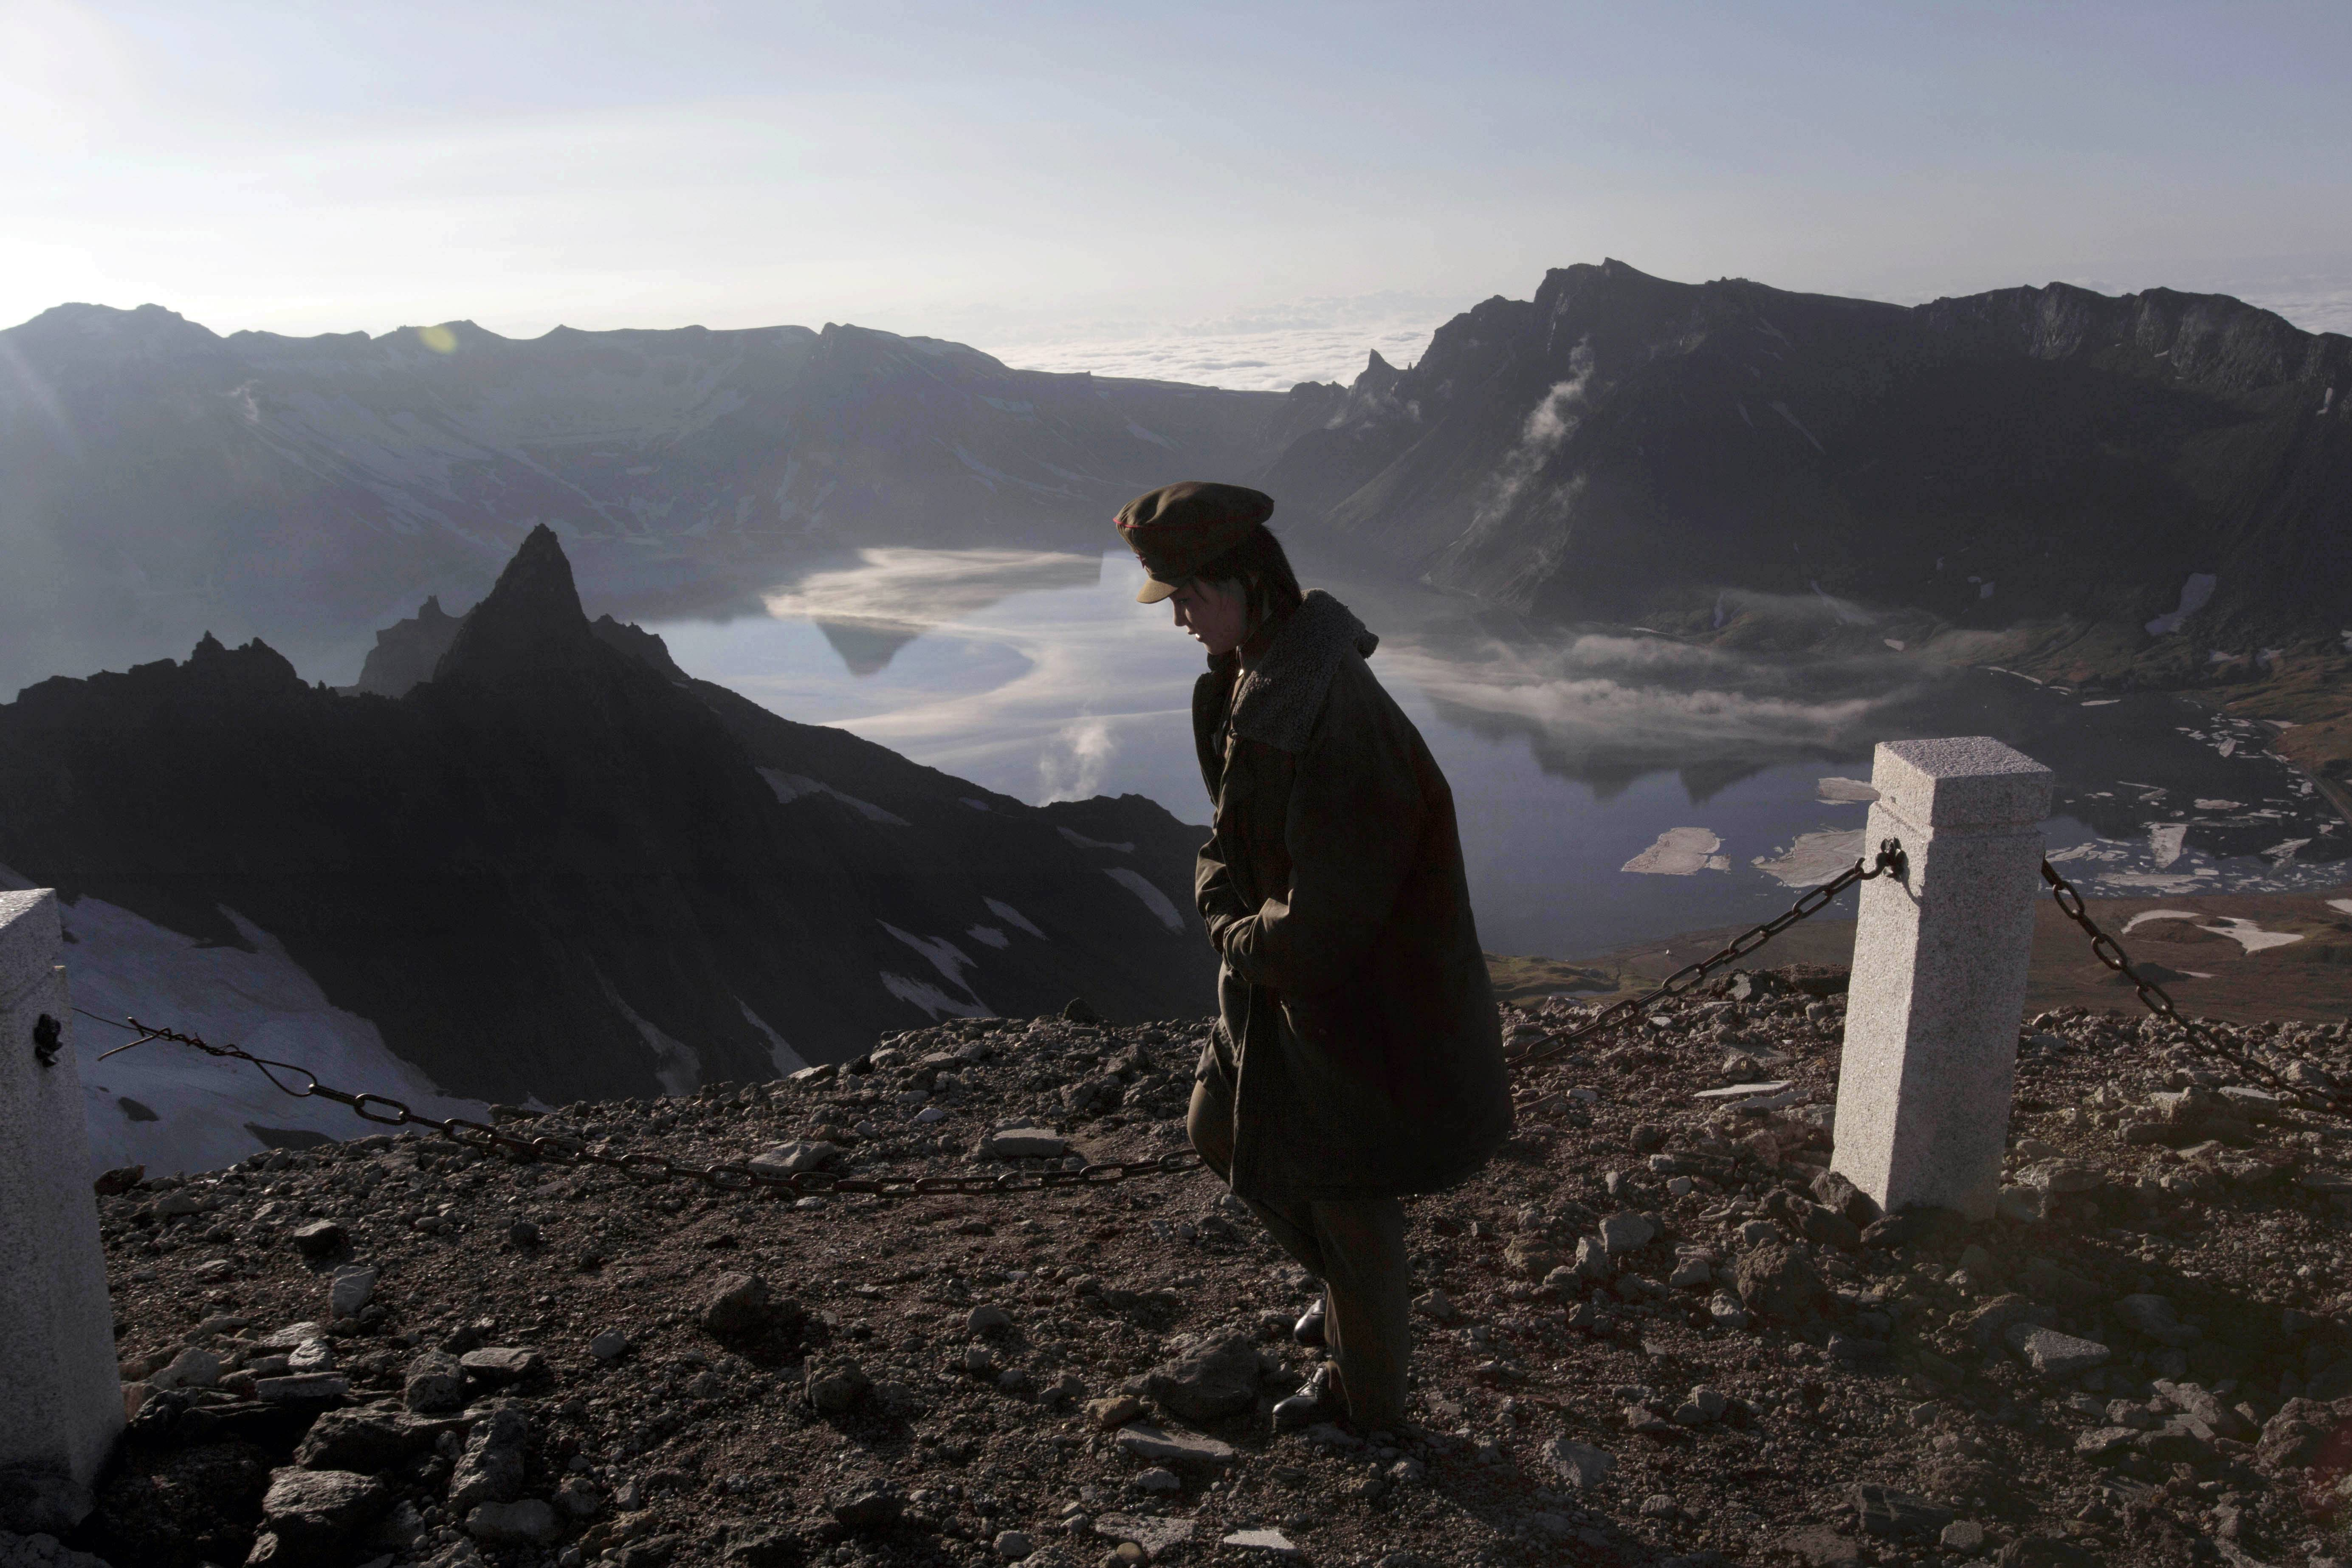 A North Korean woman walks on the peak of Mt. Paektu in North Korea's Ryanggang province. Unlike other major volcanos around the world, the remote and politically sensitive Mount Paektu remains almost a complete mystery to foreign scientists who have — until recently — been unable to conduct on-site studies.